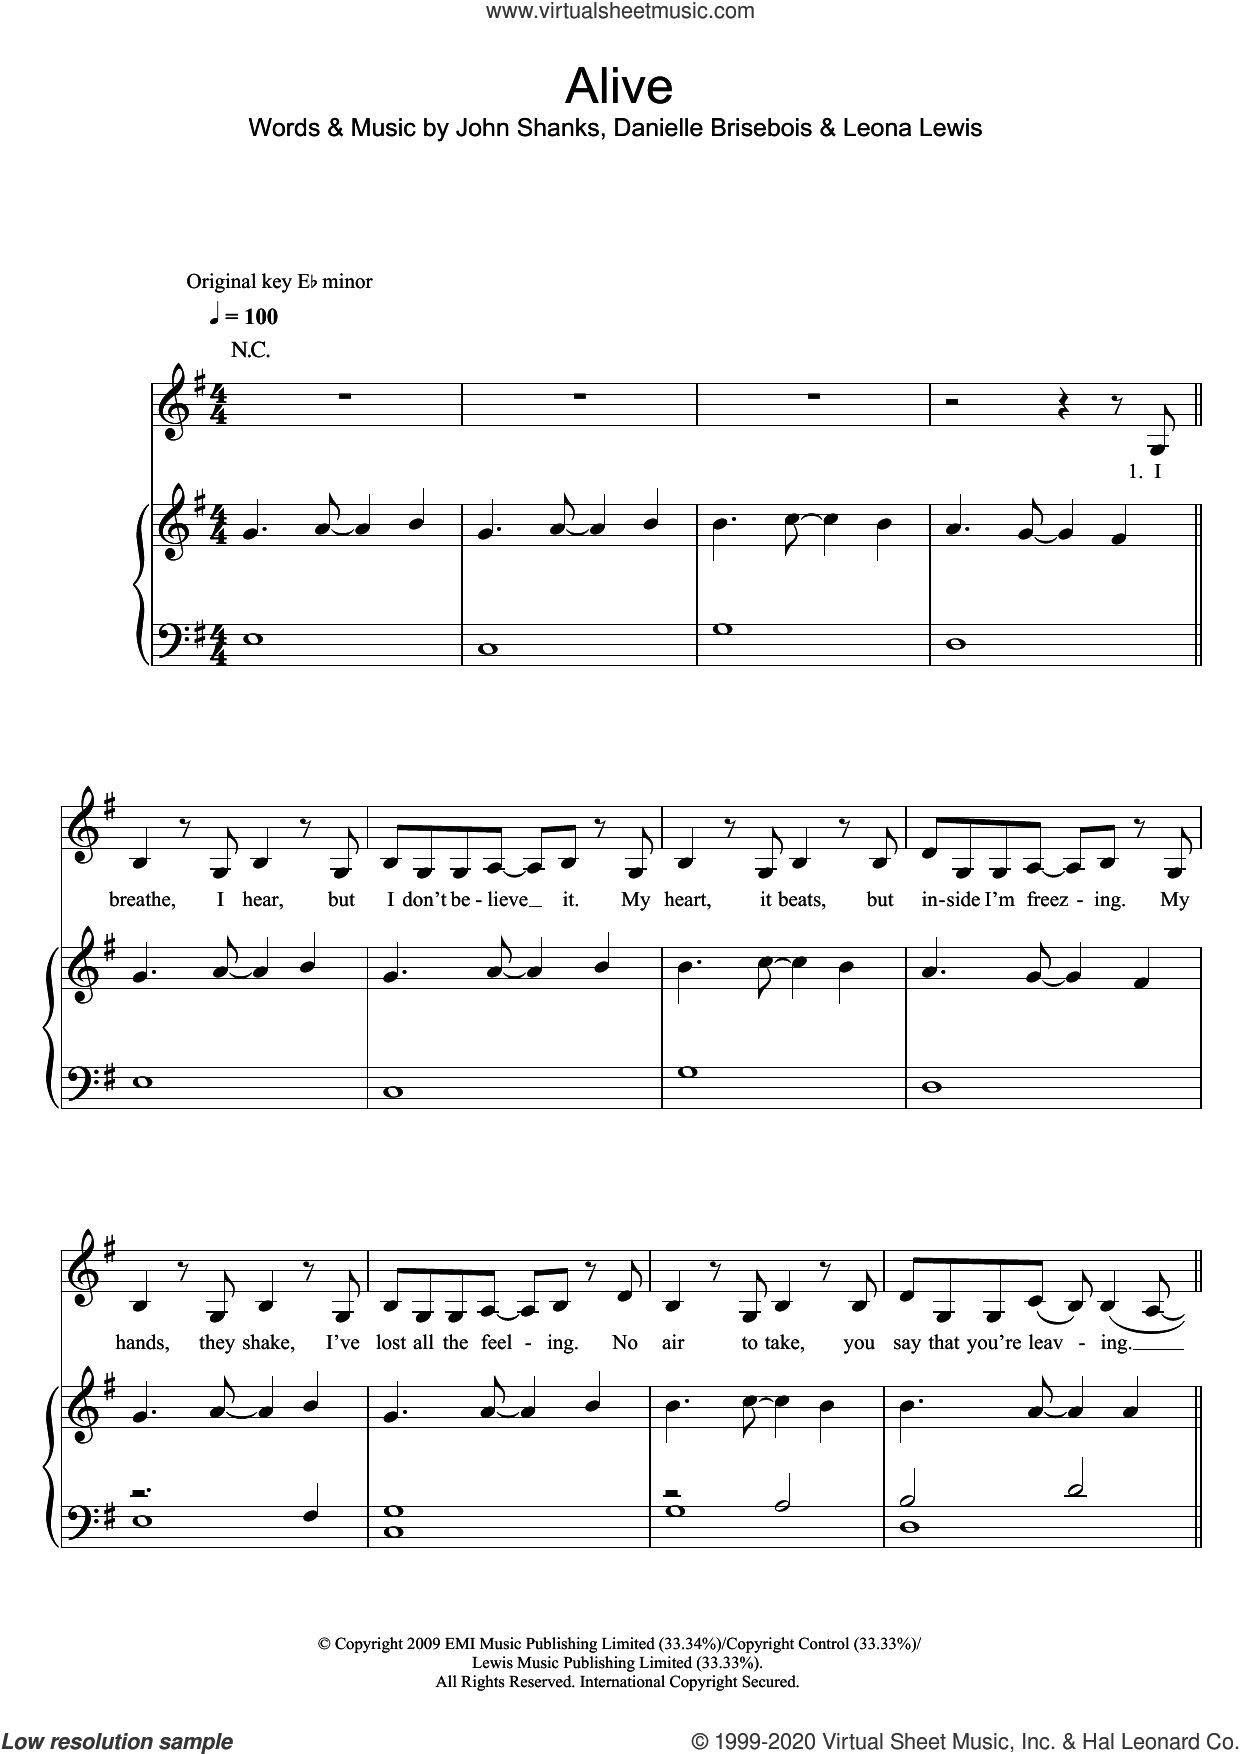 Alive sheet music for voice, piano or guitar by Leona Lewis, Danielle Brisebois and John Shanks, intermediate skill level